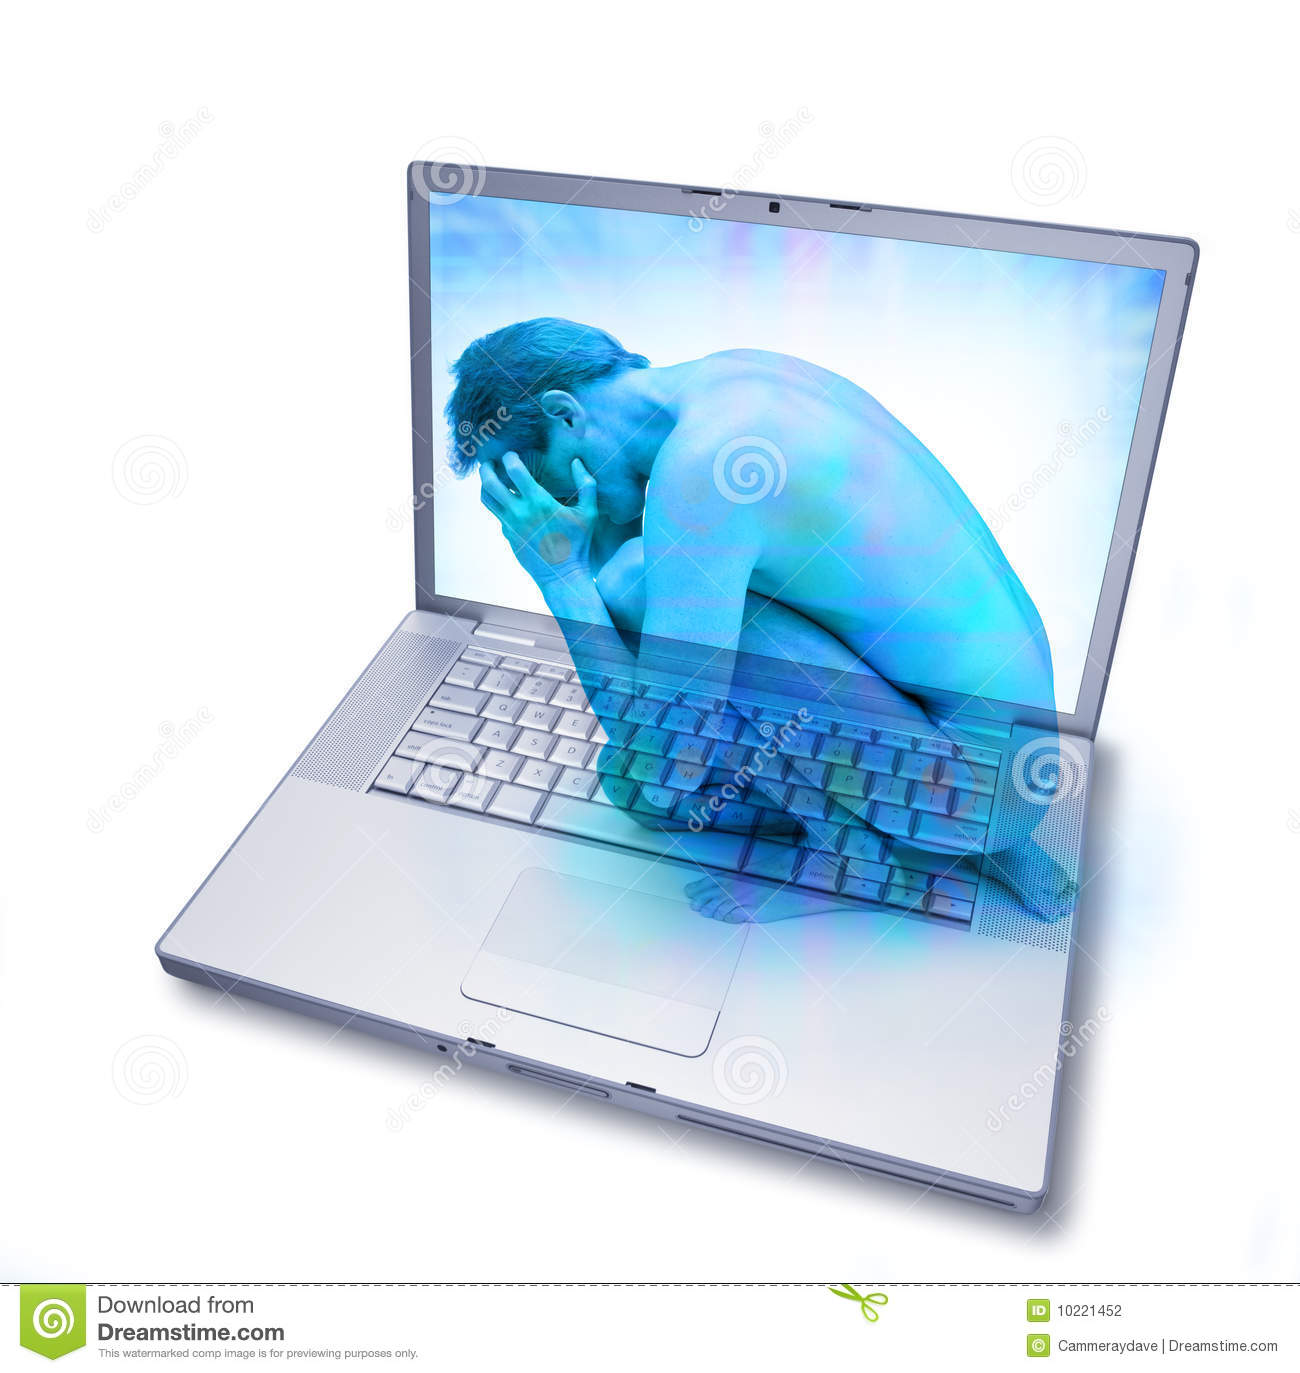 What is computer addiction